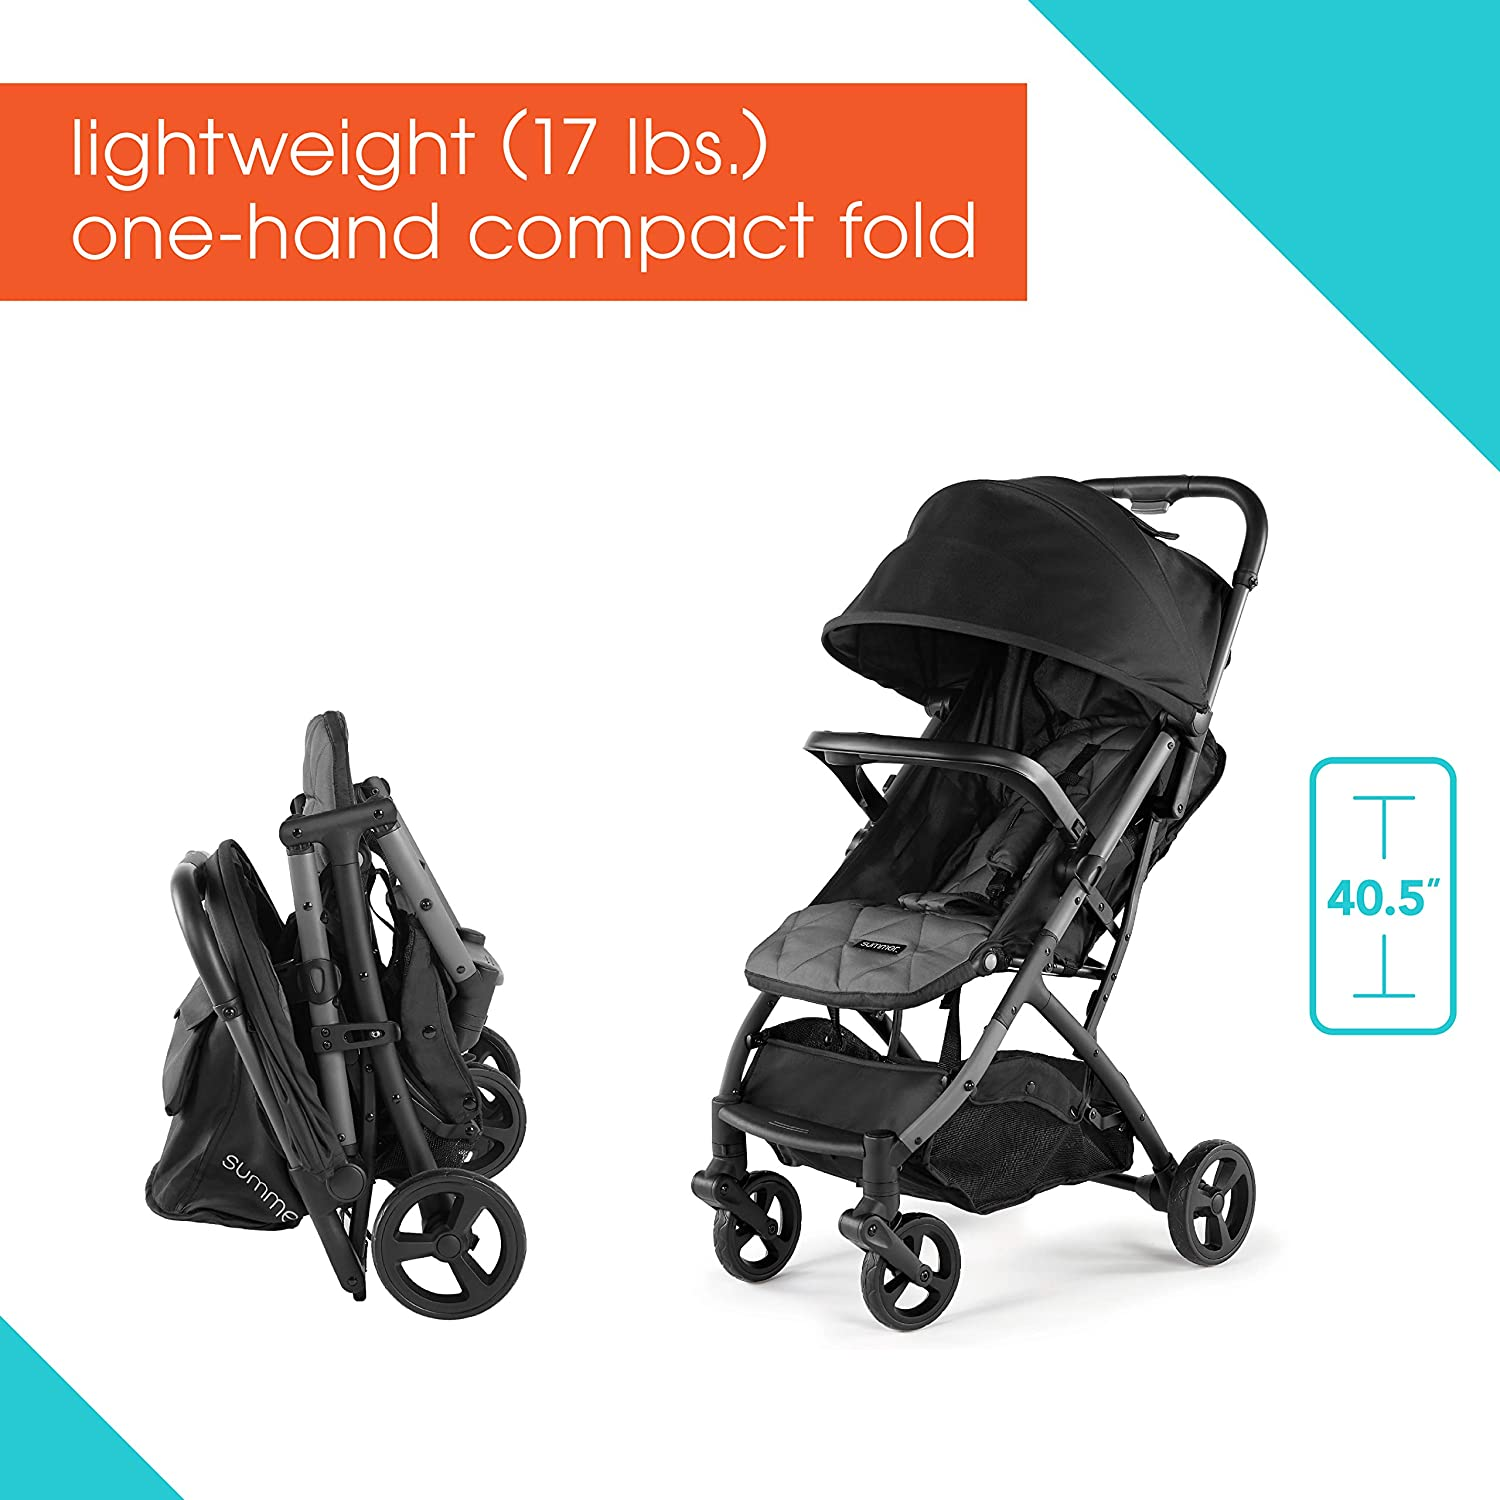 Summer 3Dpac CS Compact Fold Stroller, Black – Compact Car Seat Adaptable Baby Stroller – Lightweight Stroller with Convenient One-Hand Fold, Reclining Seat and Extra-Large Canopy